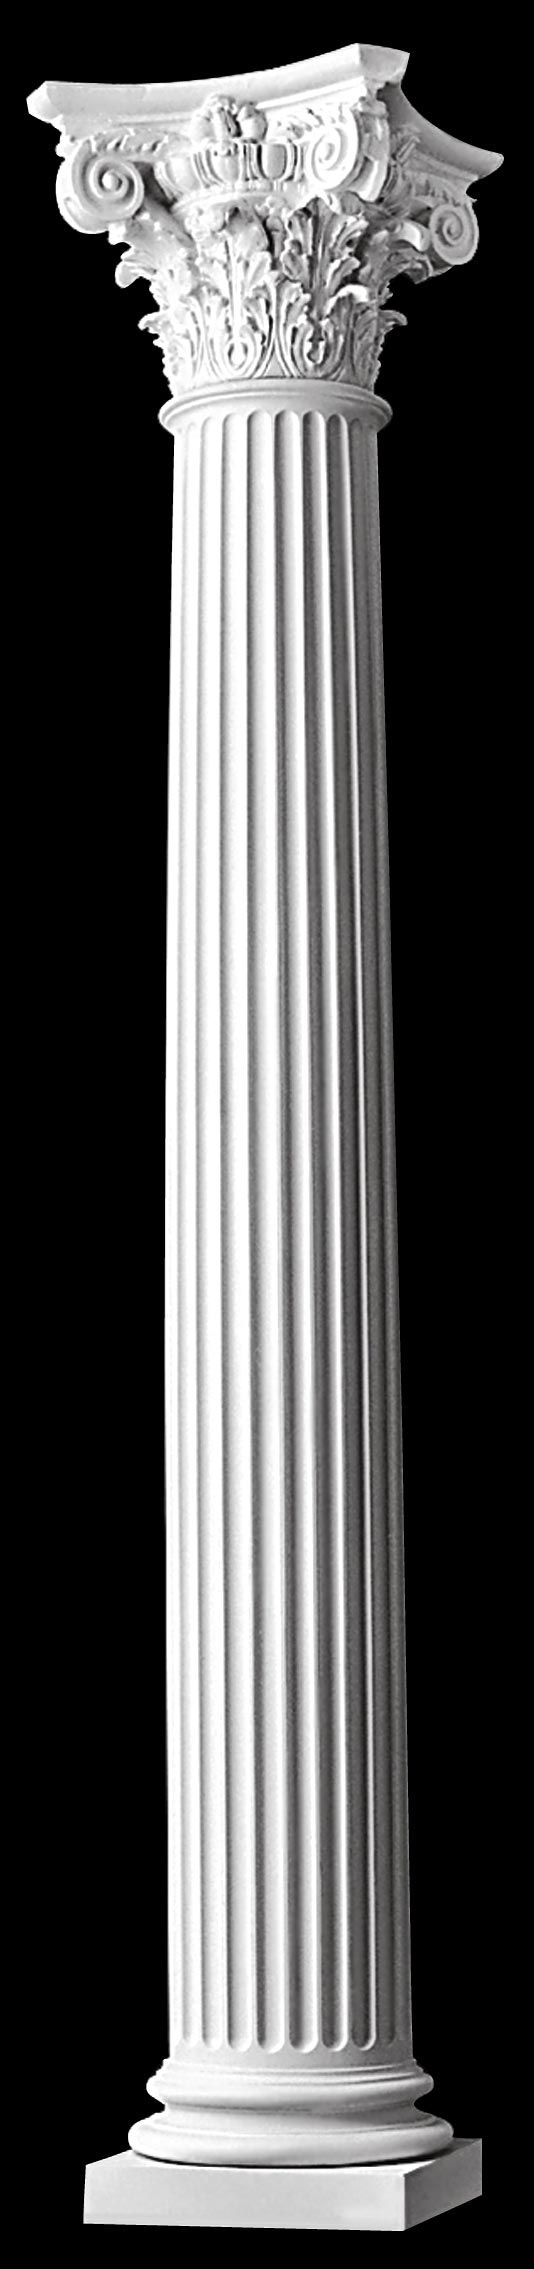 Best 25 Fluted Columns Ideas On Pinterest Image For